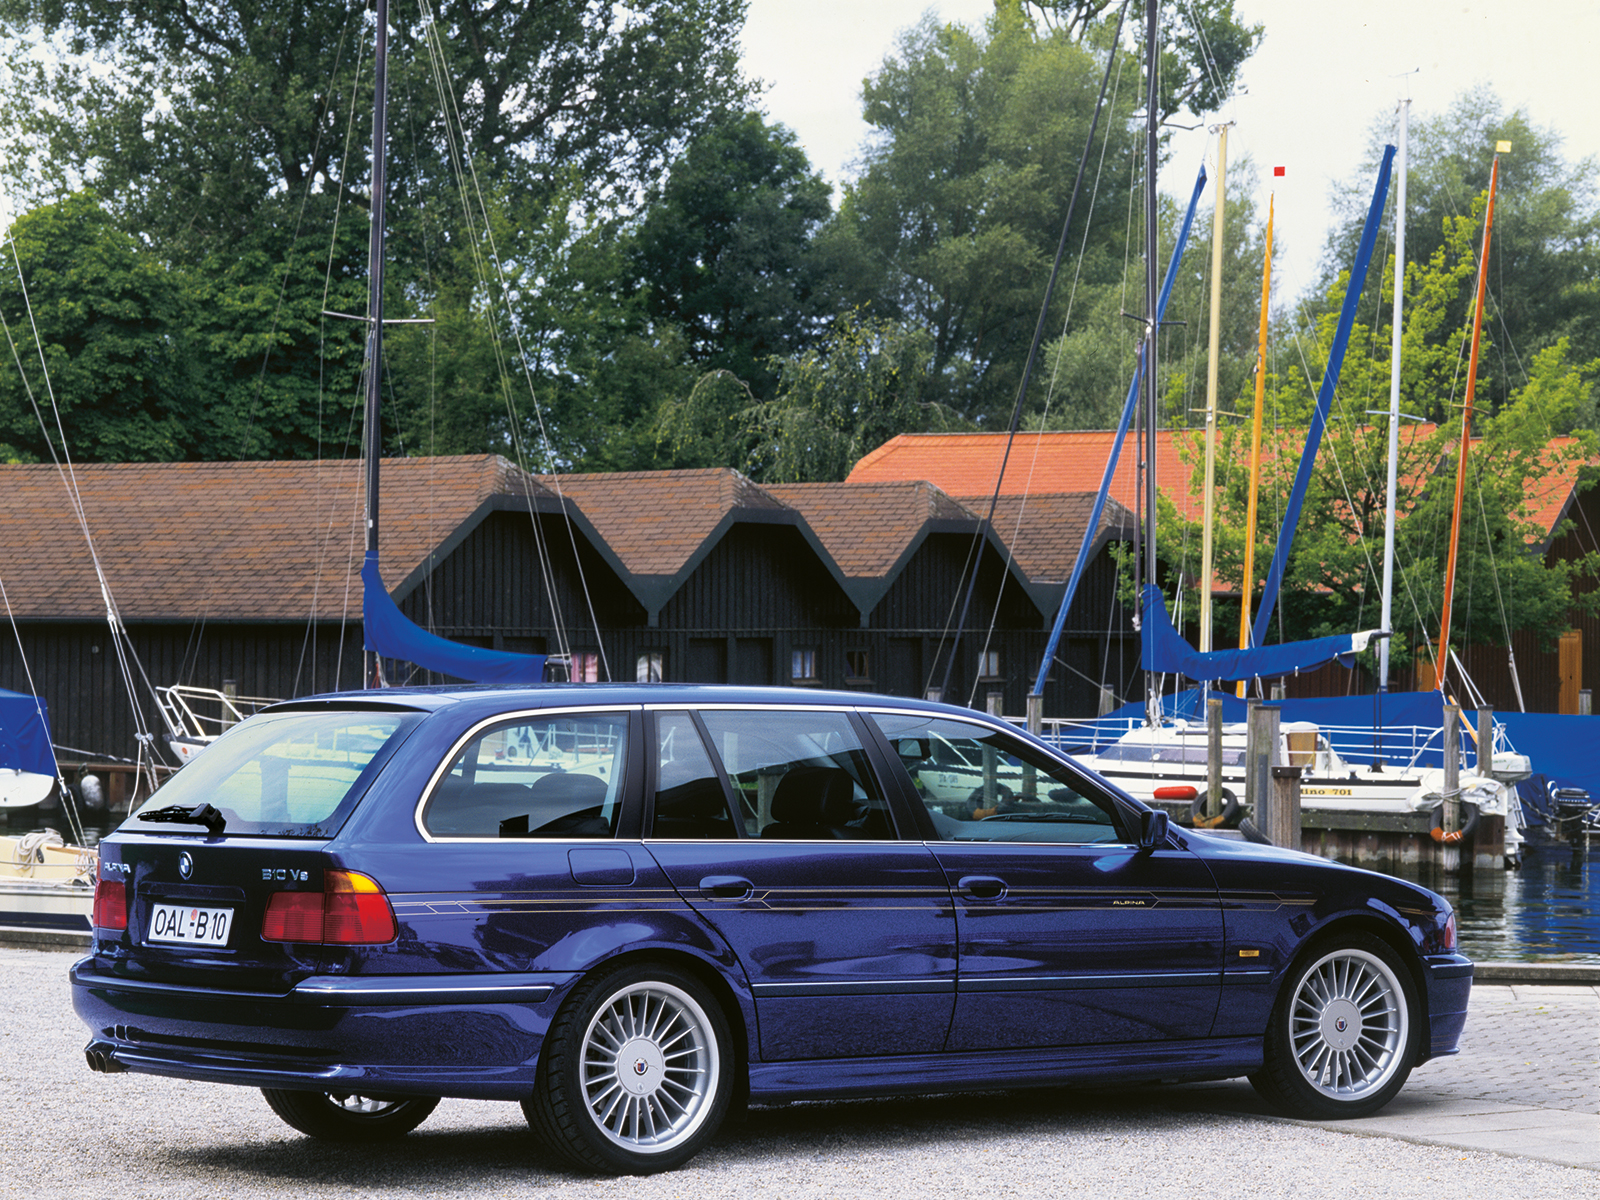 Edf B O moreover Ixhnlon likewise Epcp O B Bmw E M Bsupercharger further Dsc furthermore Maxresdefault. on 2000 bmw e39 with m5 engine